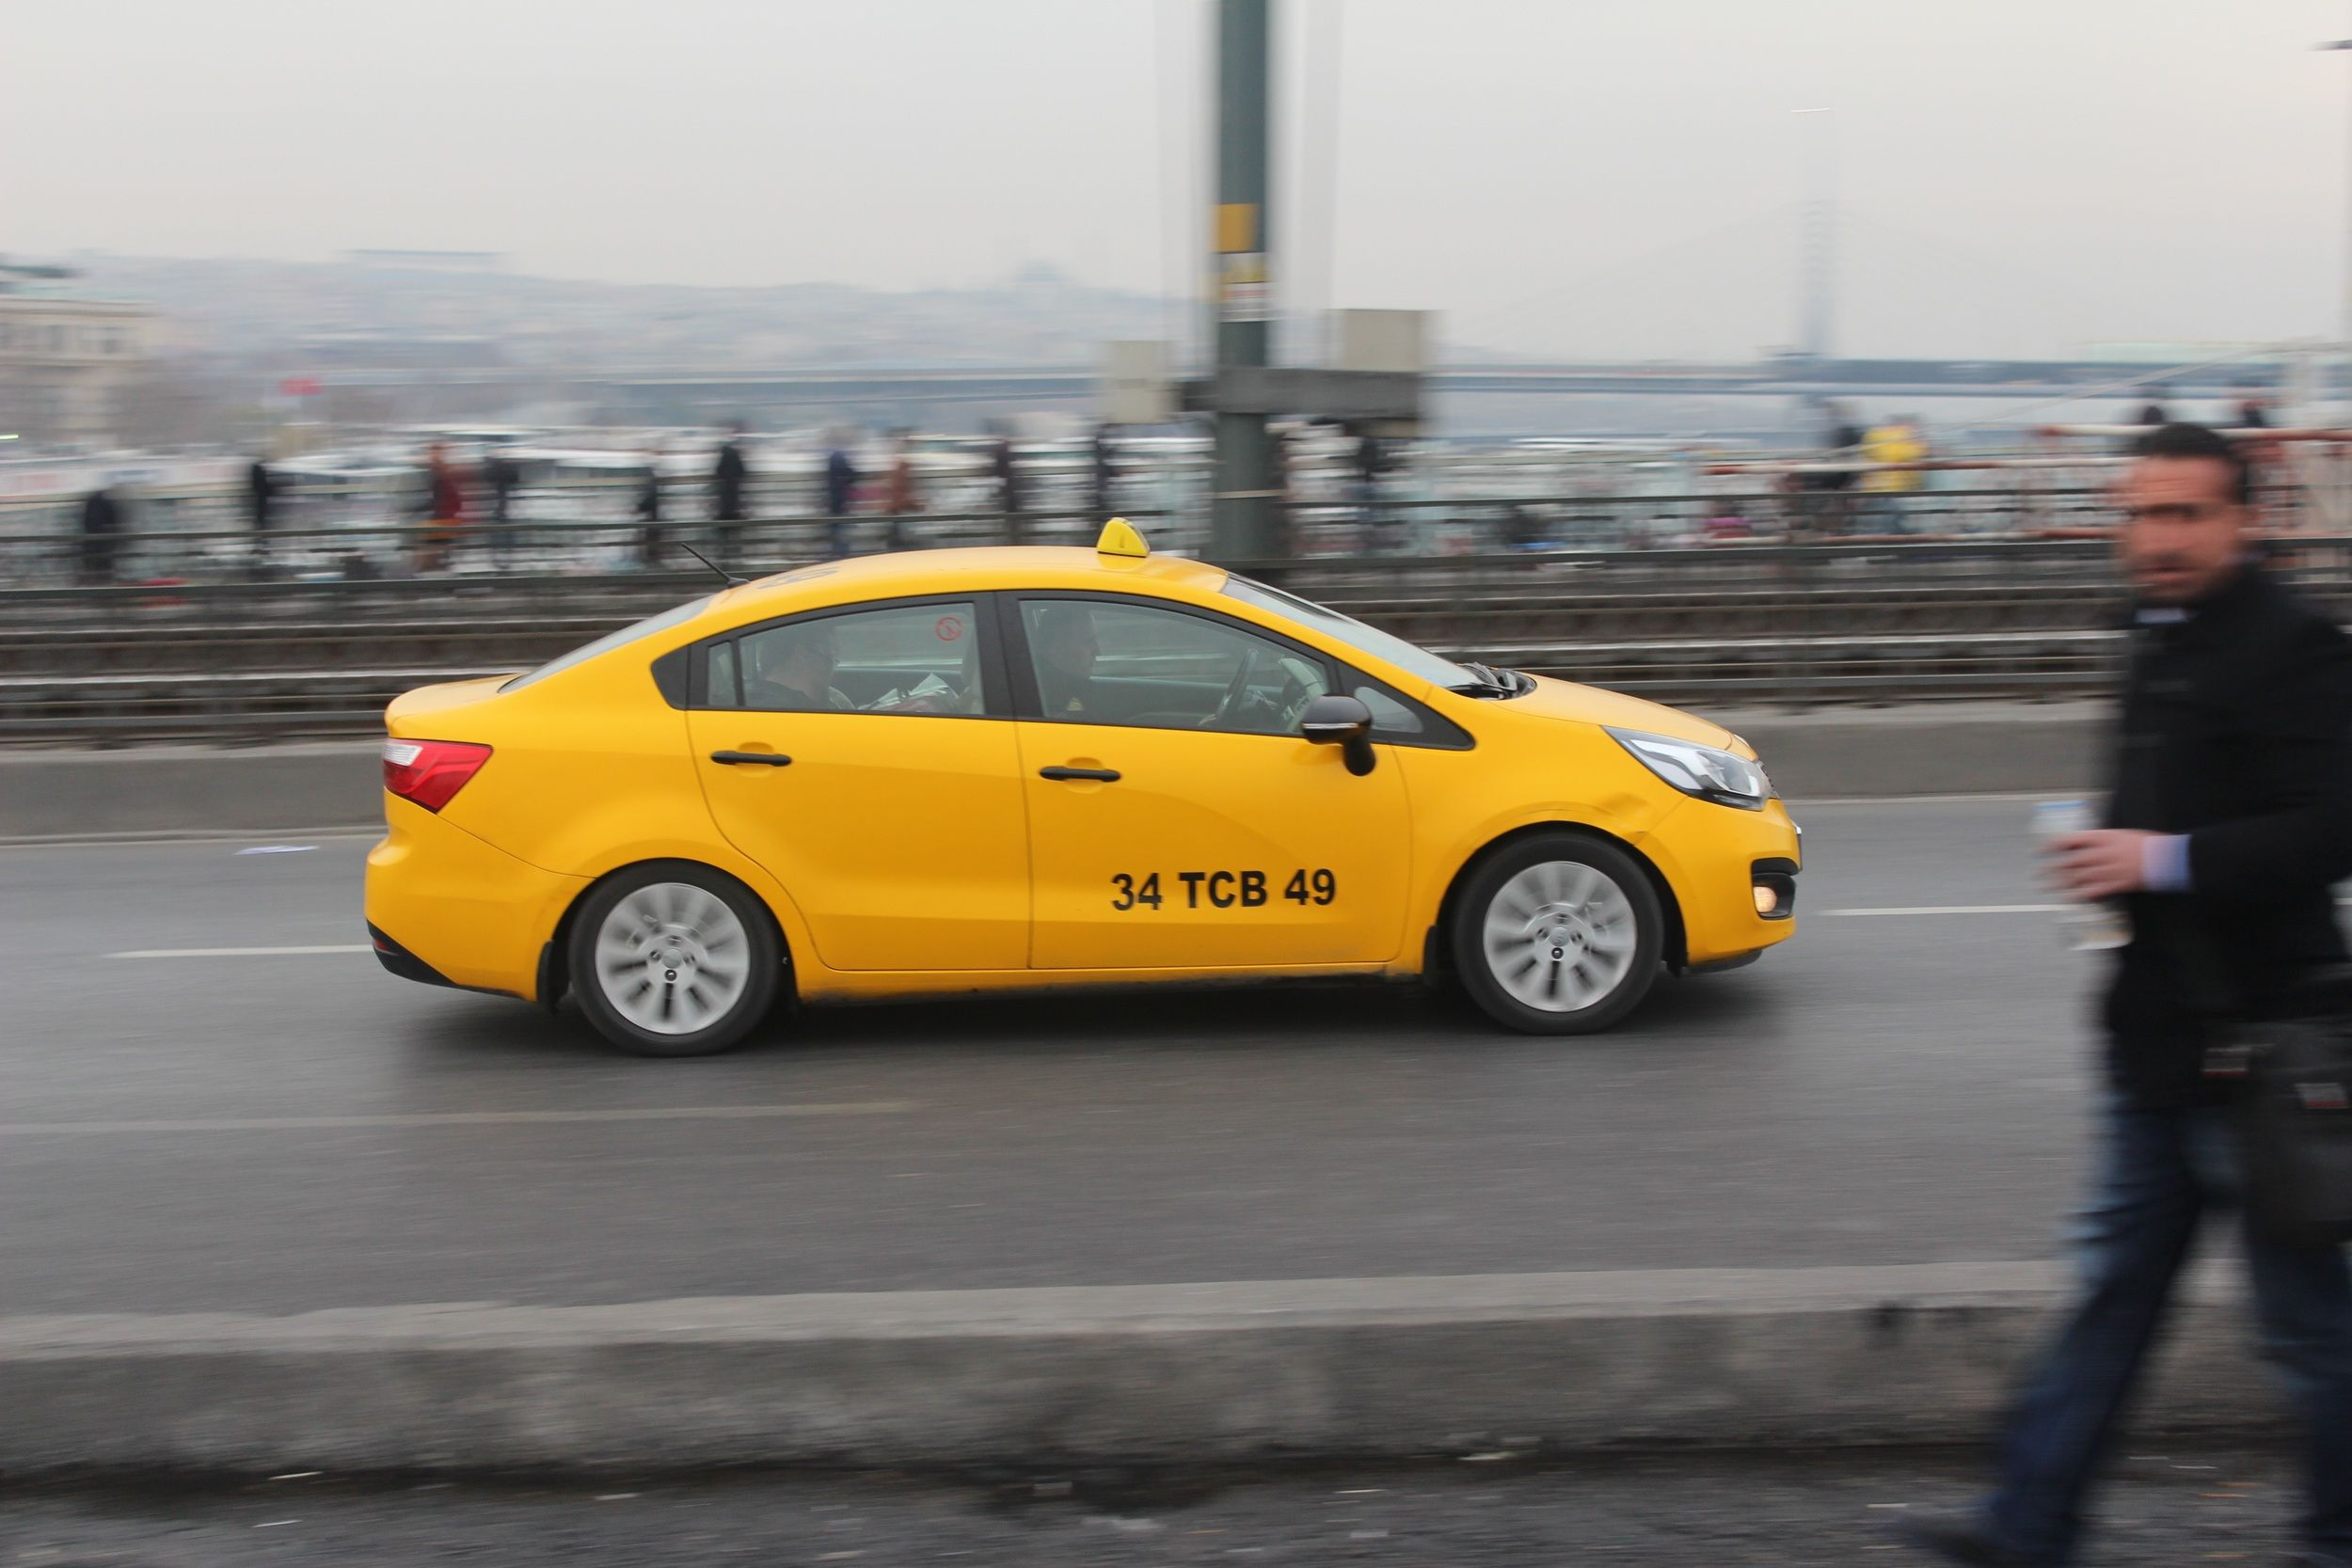 Taxis in Istanbul